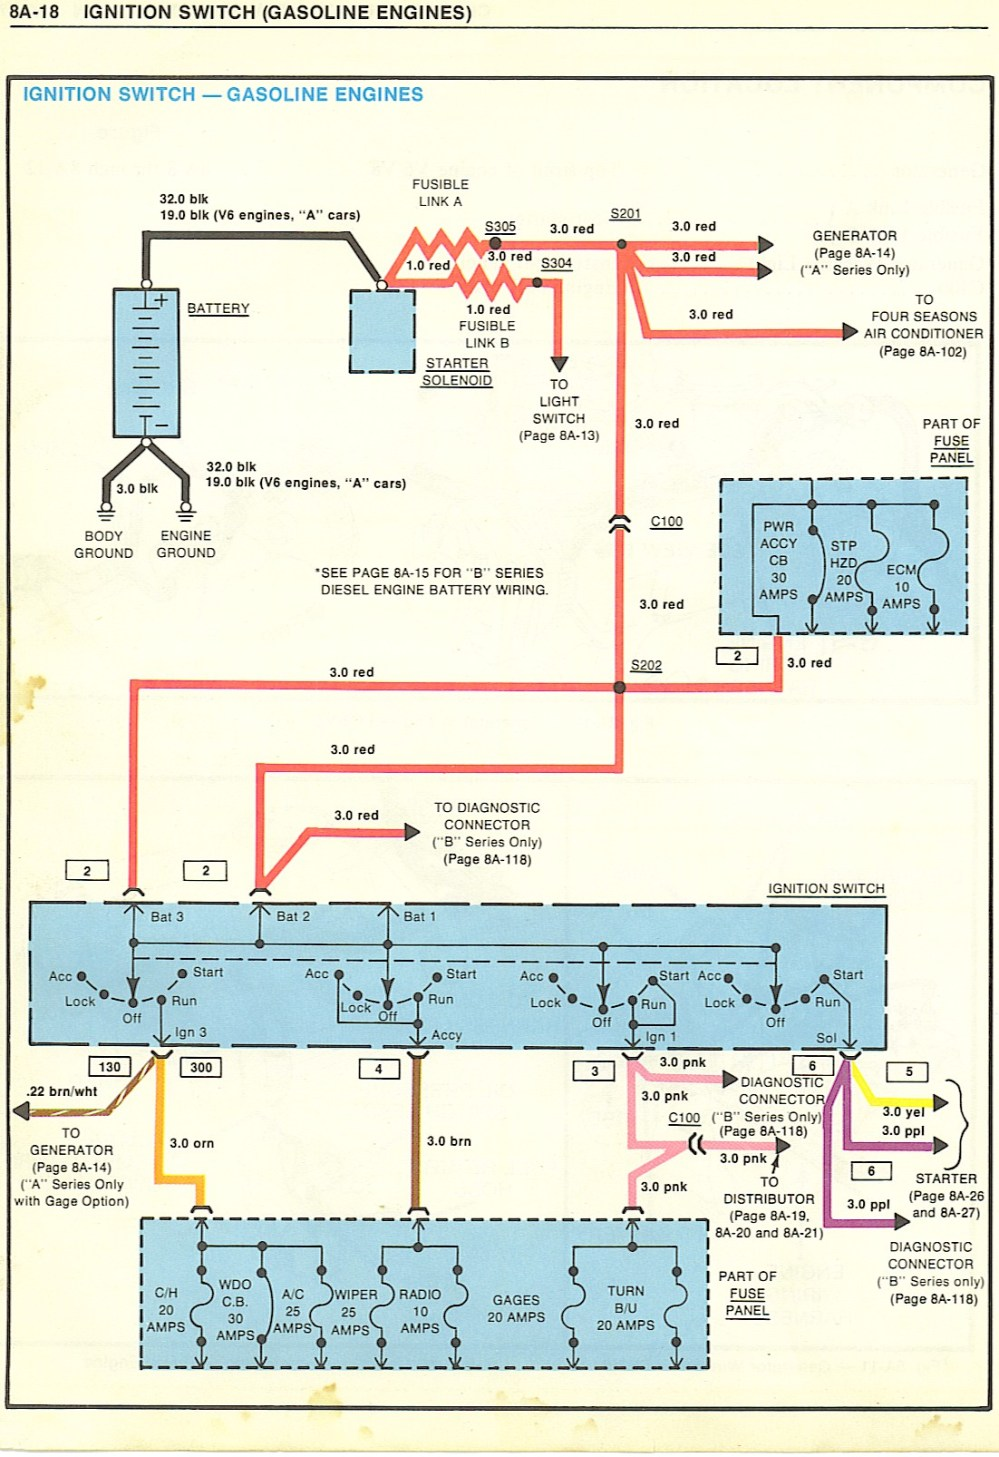 medium resolution of gm ignition switch pigtail wiring diagram 1966 wiring librarygm ignition switch pigtail wiring diagram 1966